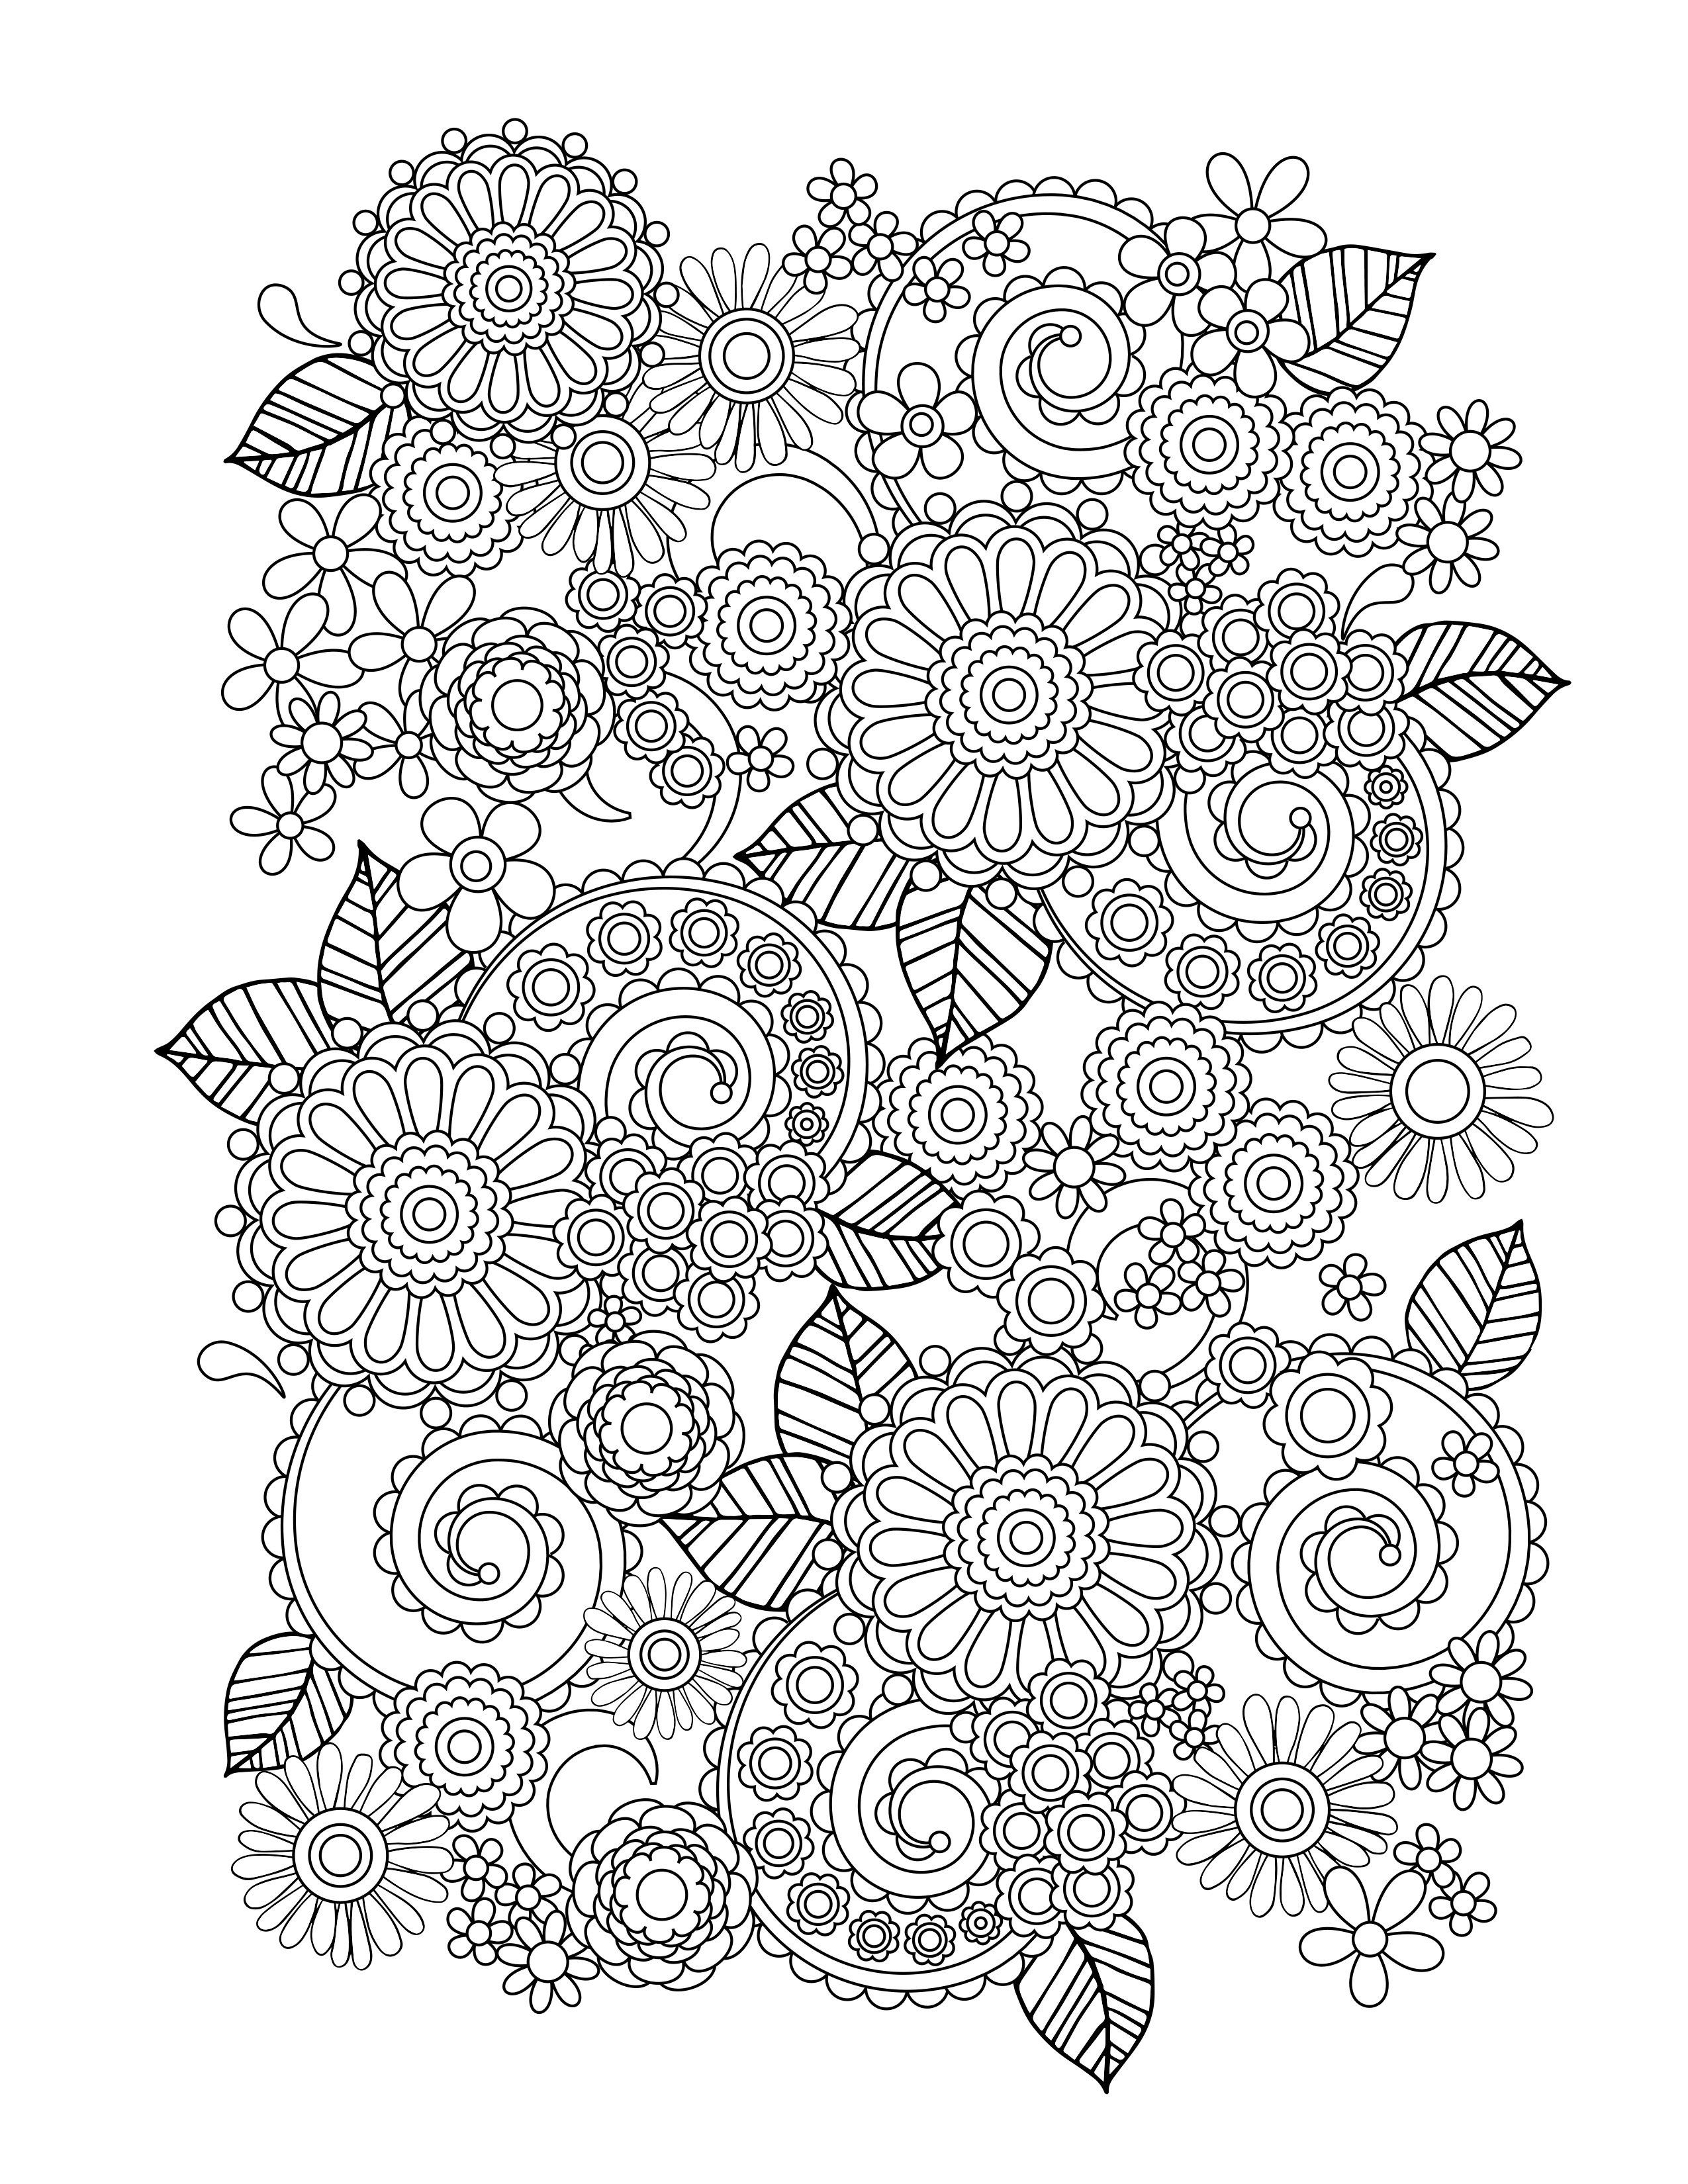 The enchanted forest colouring book nz - Coloring Book Pages